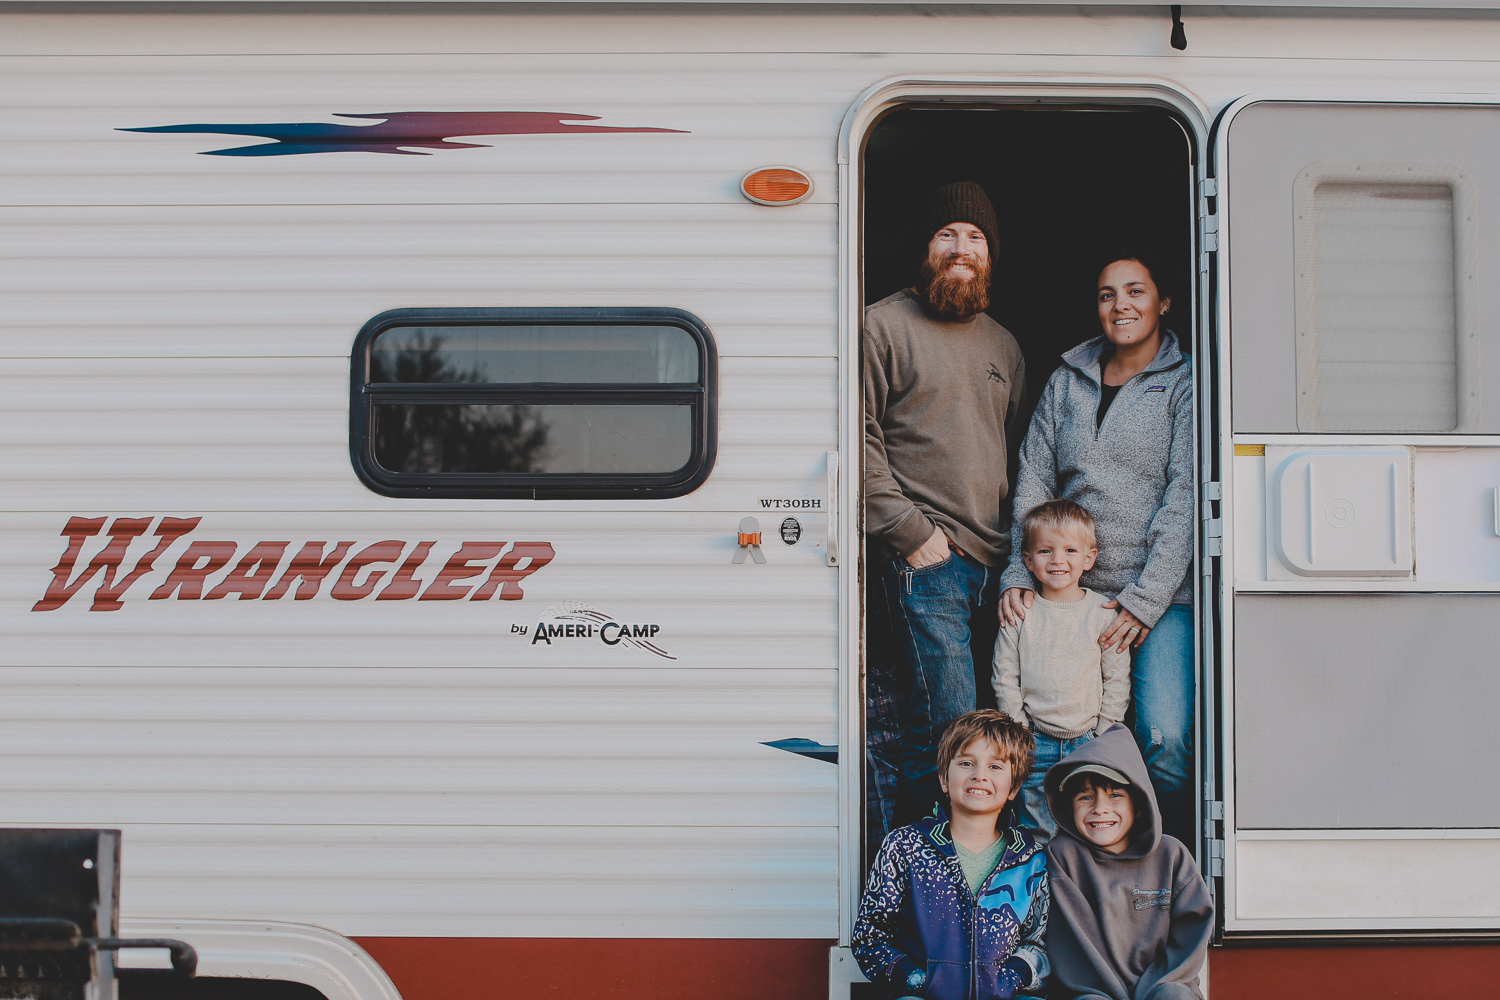 Travis and Erin Meredith - Travis and Erin, along with their 3 boys and 2 pups sold it all in 2017 and hit the road to travel the U.S. in their renovated travel trailer between photographing weddings. They are now extending their travels indefinitely, renovating a second travel trailer and hitting the road once again. Seeking adventure, like minded families, and creating memories along the way. You can follow more of their renovations and travels on Instragram @ourlivelytribe and on their personal blog.